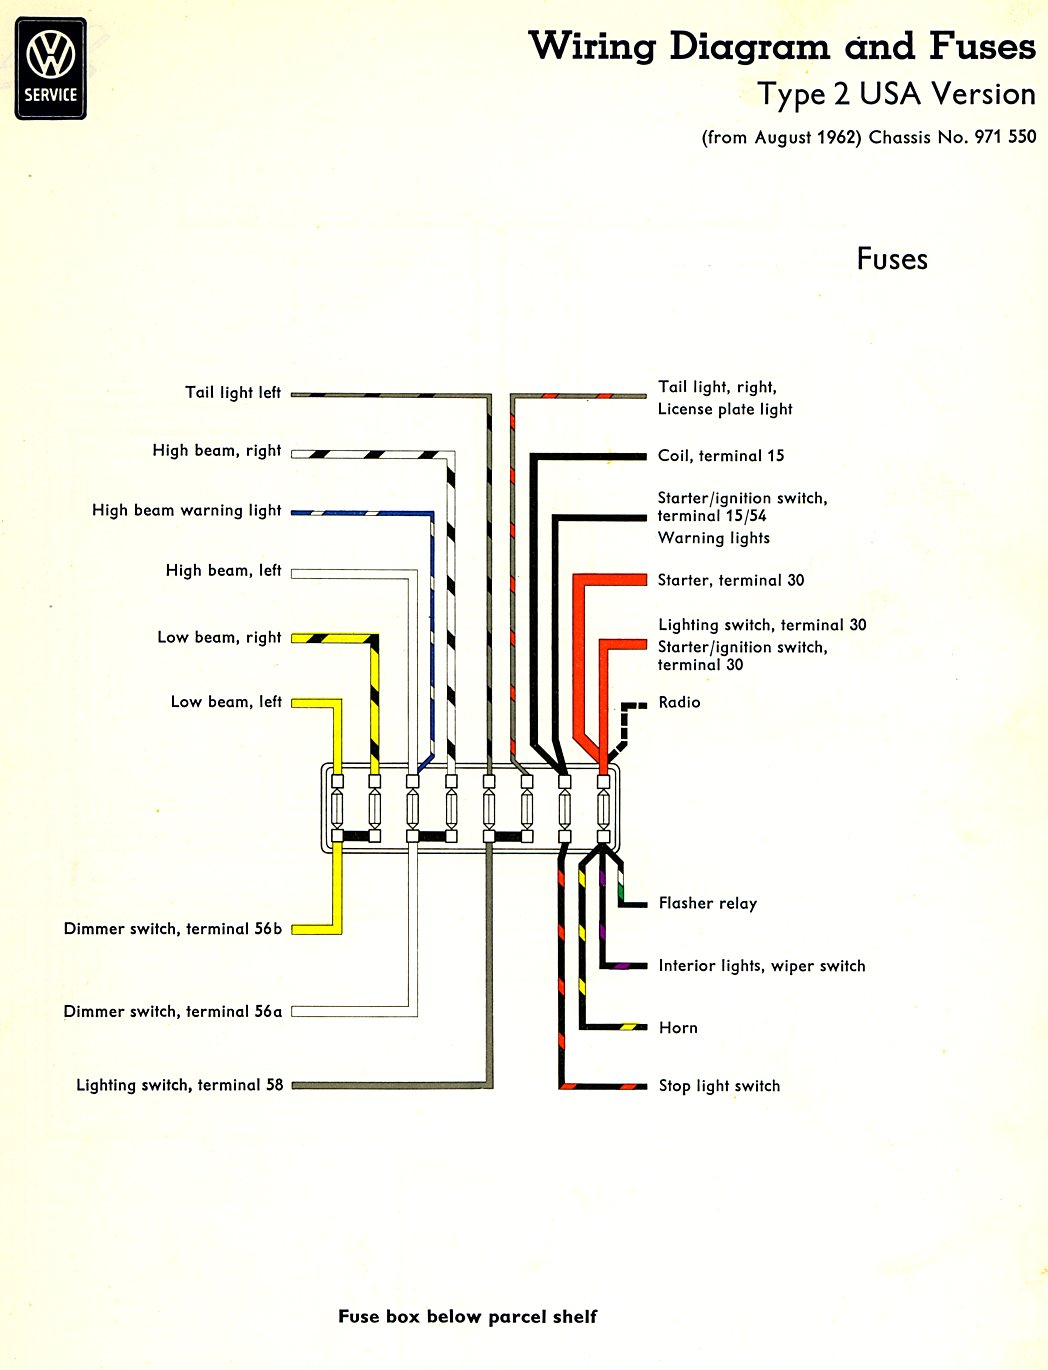 Type 2 Wiring Diagrams 74 Vw Automotive Get Free Image About Diagram